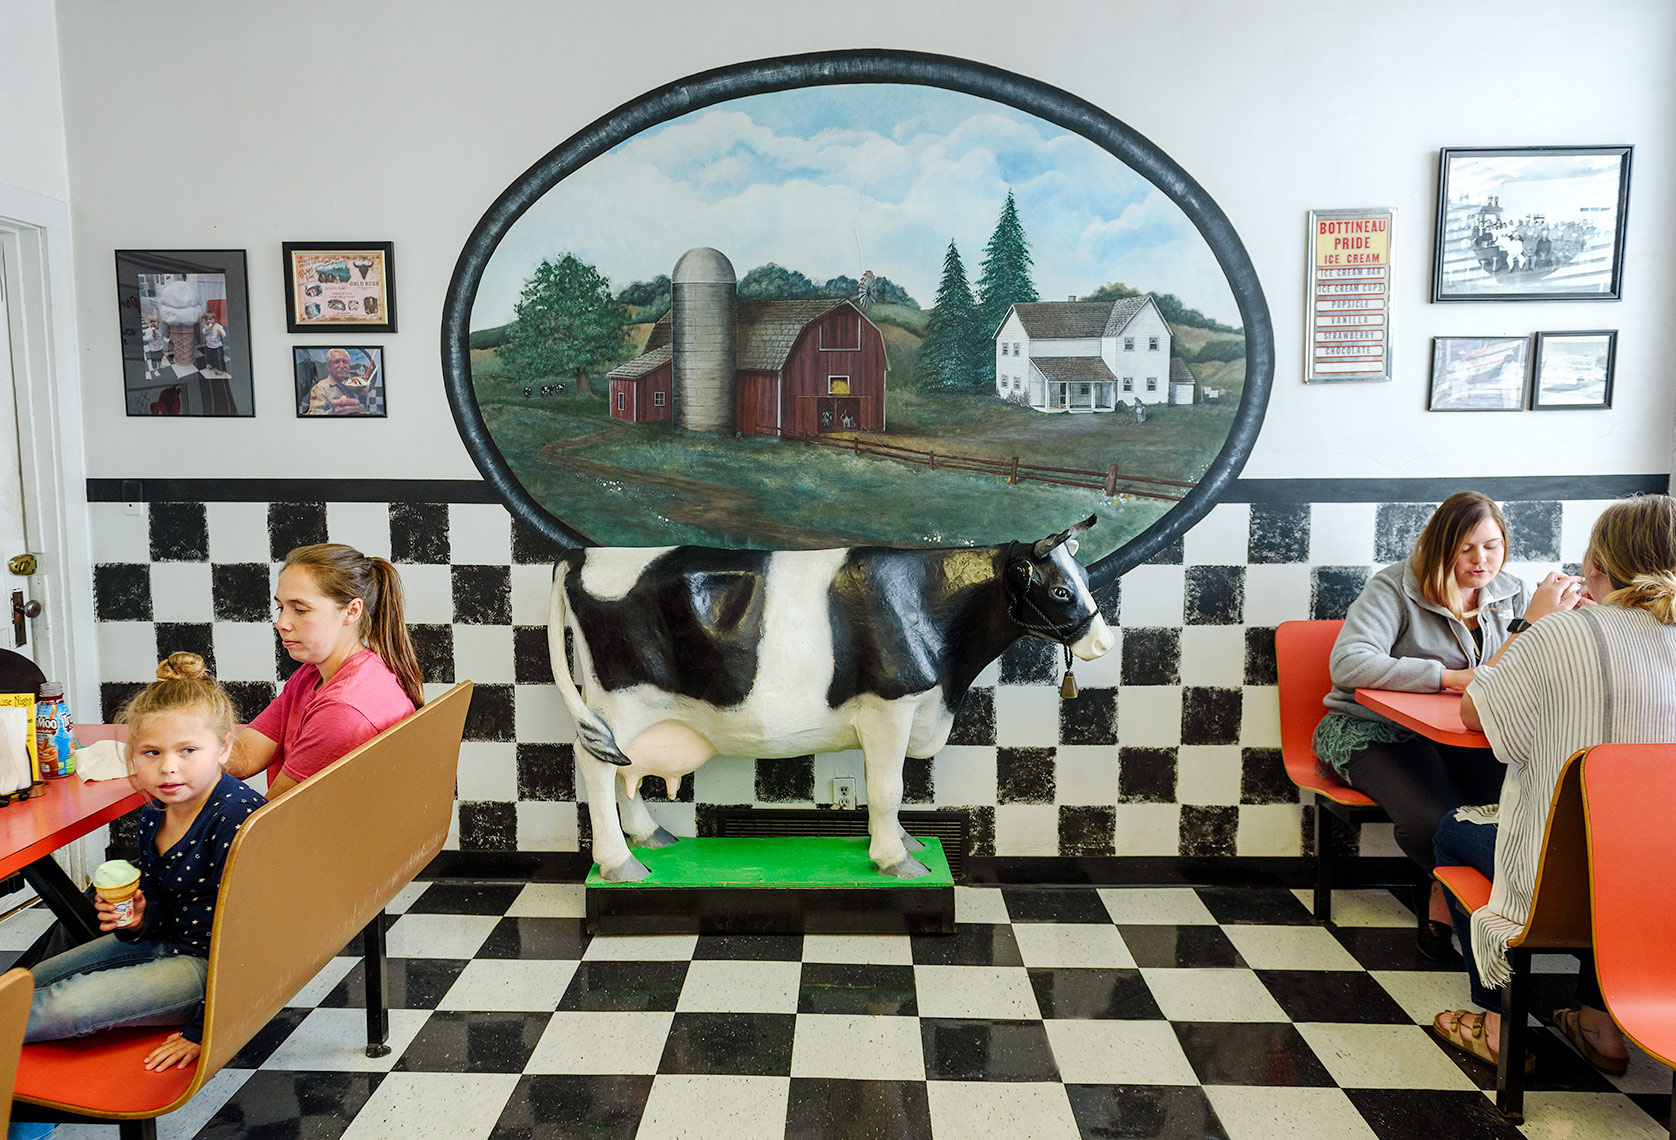 A photo of the Pride Dairy Store in Bottineau  by North Dakota photographer Dan Koeck.